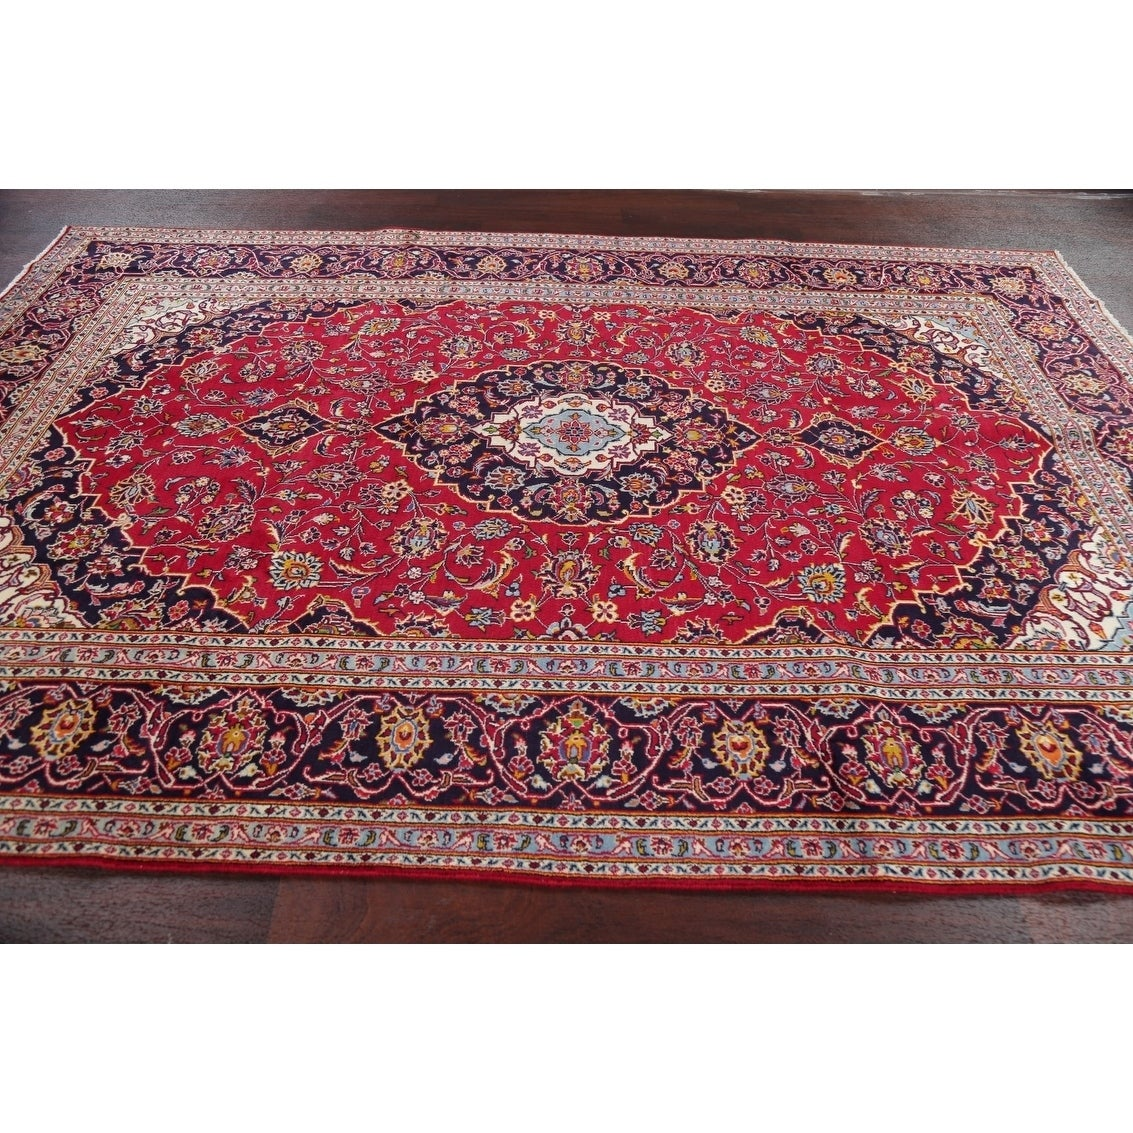 Red Floral Kashan Persian Area Rug Handmade Traditional Carpet 6 9 X 9 11 On Sale Overstock 30563254